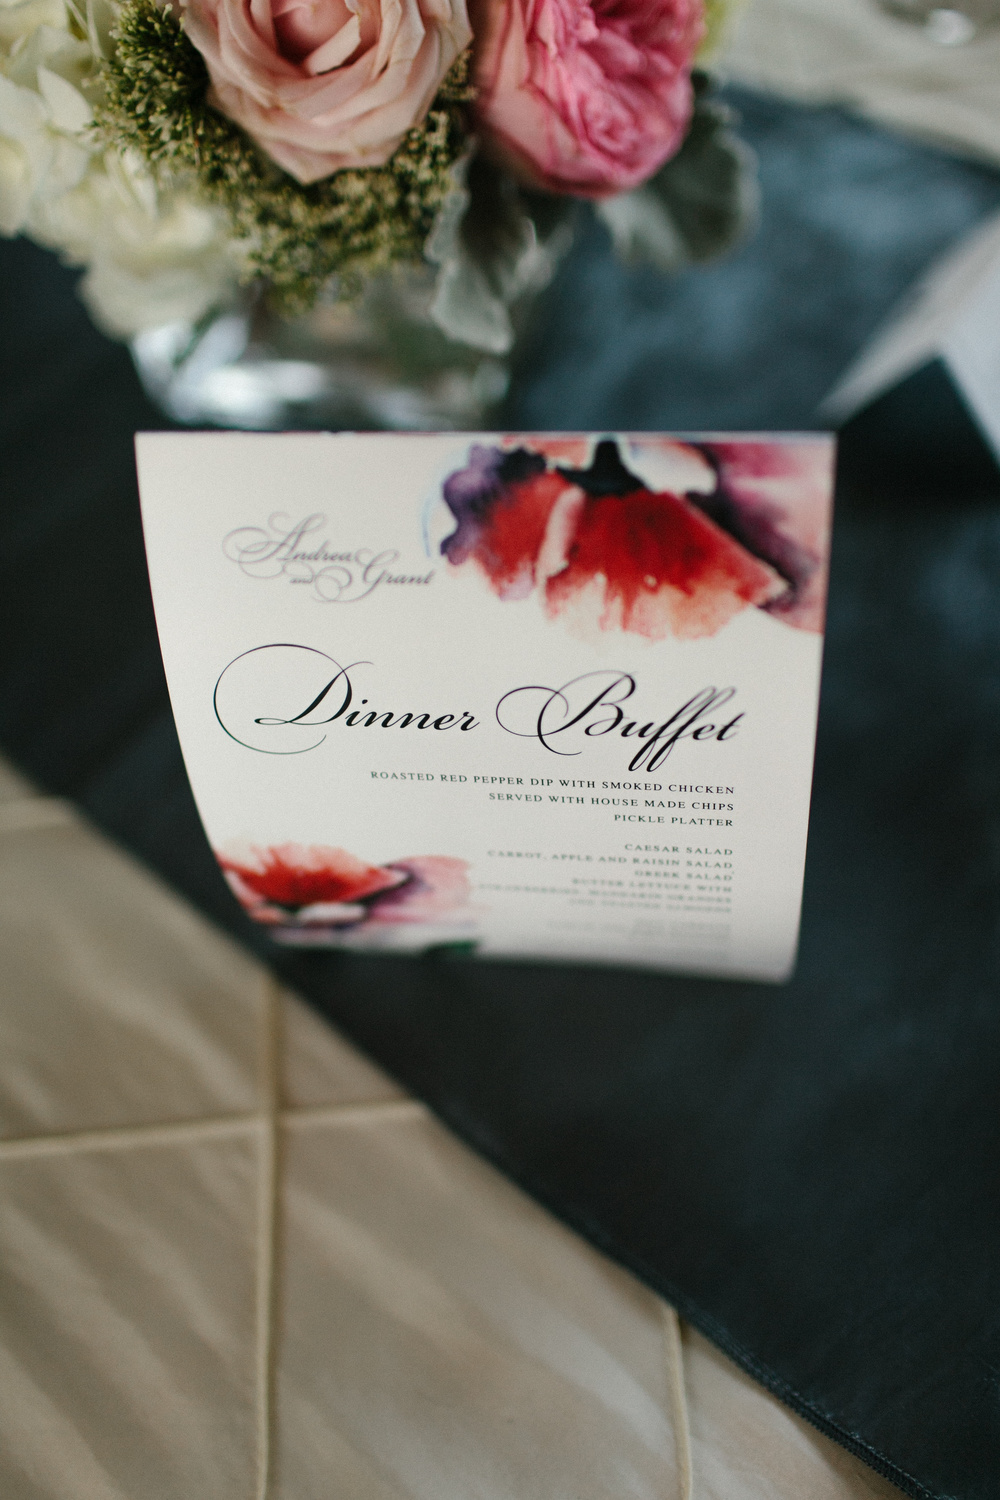 Dinner Buffet Menu Card for Wedding Table | photo by blf Studios | wedding by Madeline's Weddings